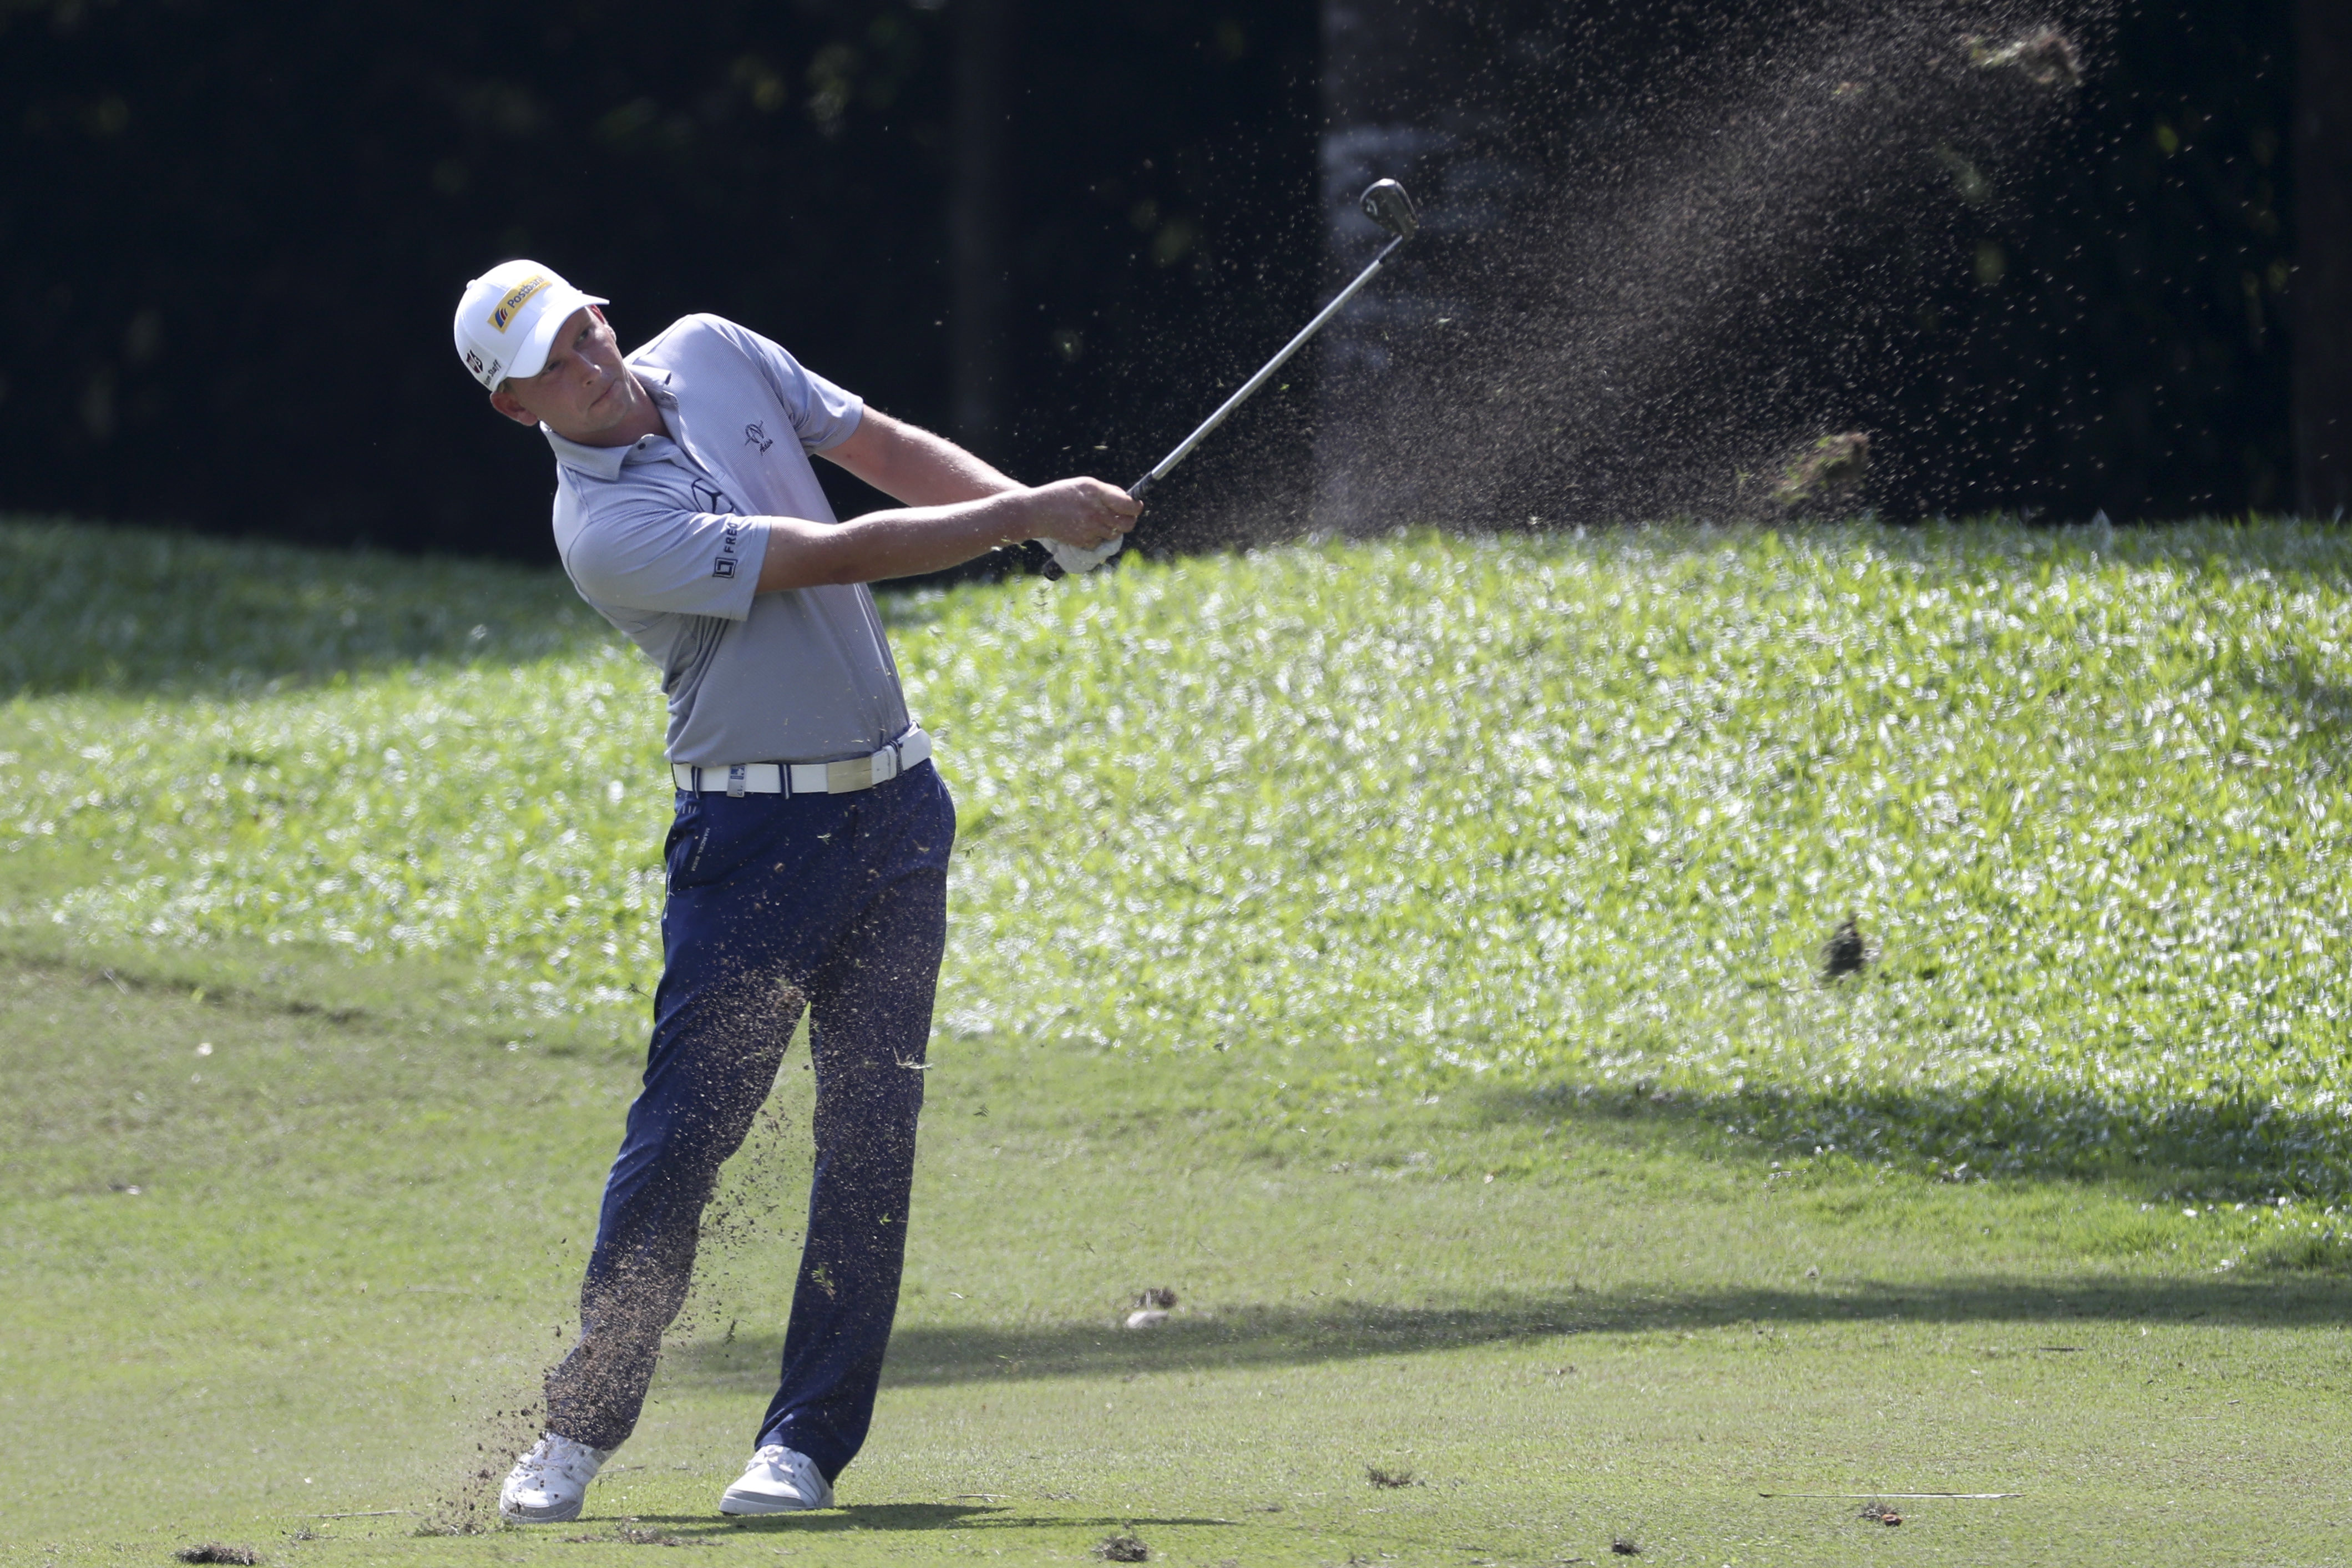 Germany's Marcel Siem follow his shot on the 15th hole during the second day of Maybank Championship golf tournament in Kuala Lumpur, Malaysia, Friday, Feb. 10, 2017. (AP Photo/Daniel Chan)